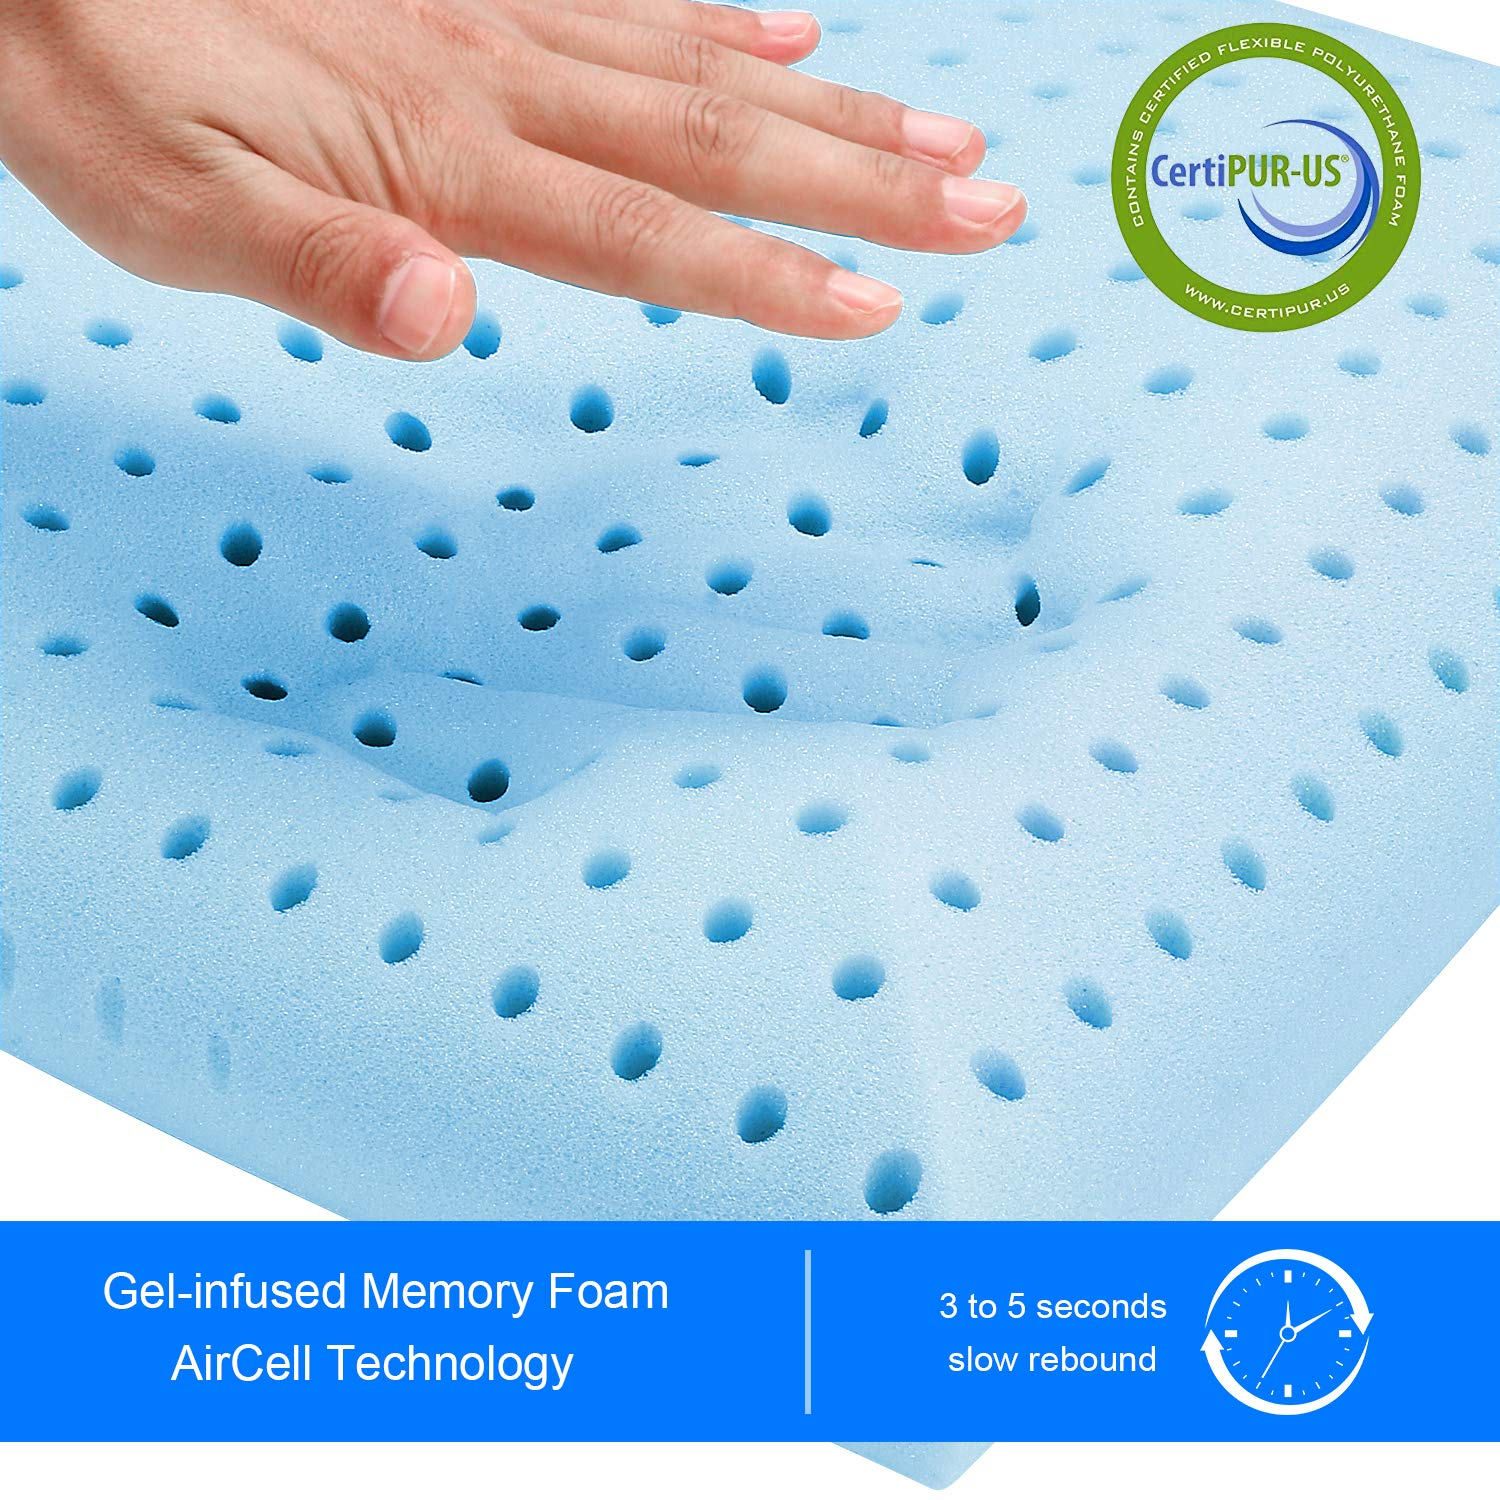 Milemont Memory Foam Pillow, Bed Pillow for Sleeping, Pillow for Neck Pain, Neck Support for Back, Stomach, Side Sleepers, CertiPUR-US, Standard Size by Milemont (Image #1)